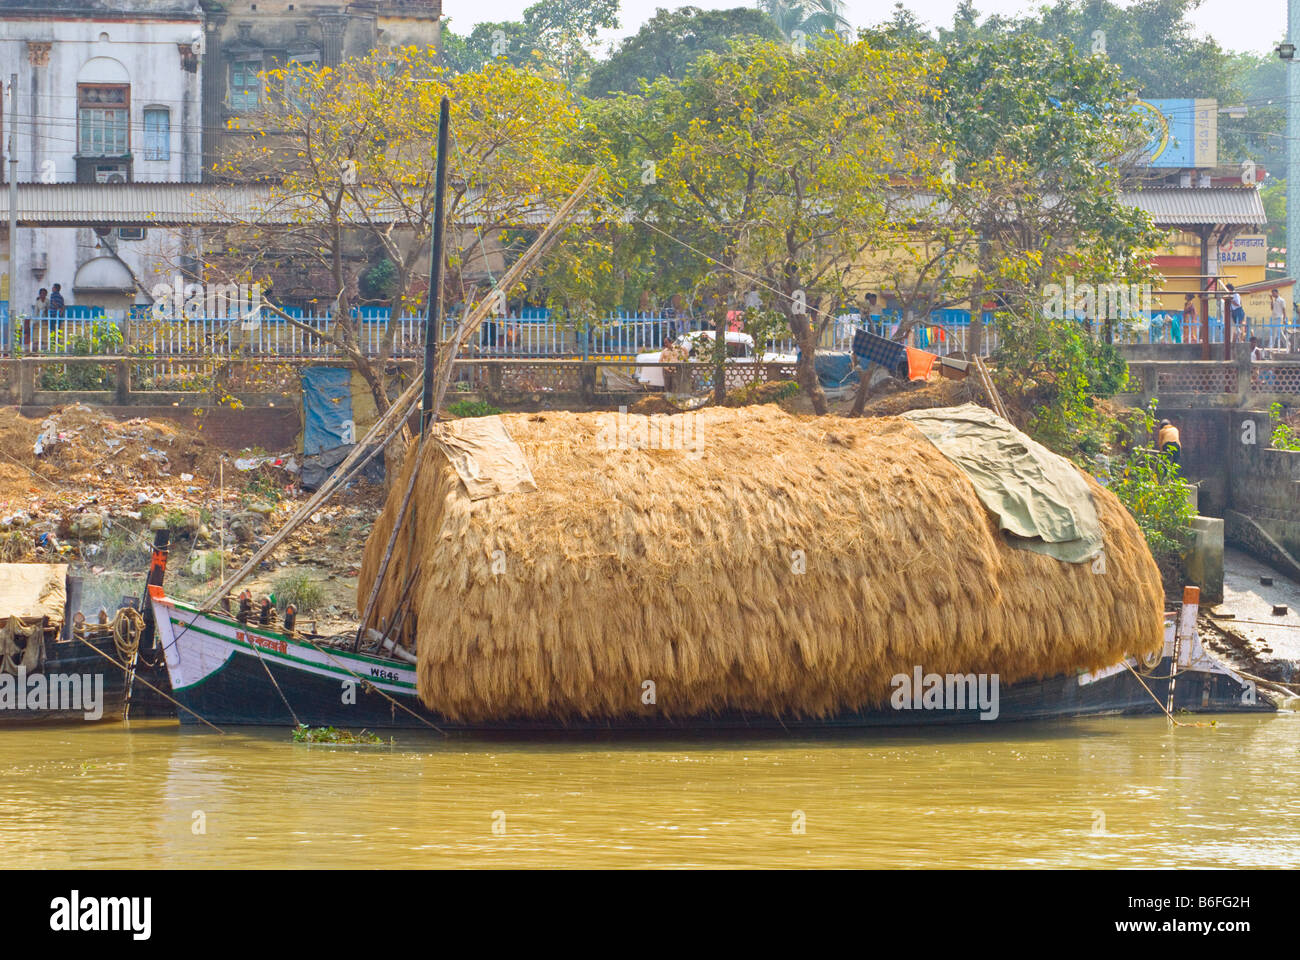 Boat on the river Hooghly, Kolkata, India, loaded with straw destined for the Potters' Market in Kumortuli. Stock Photo